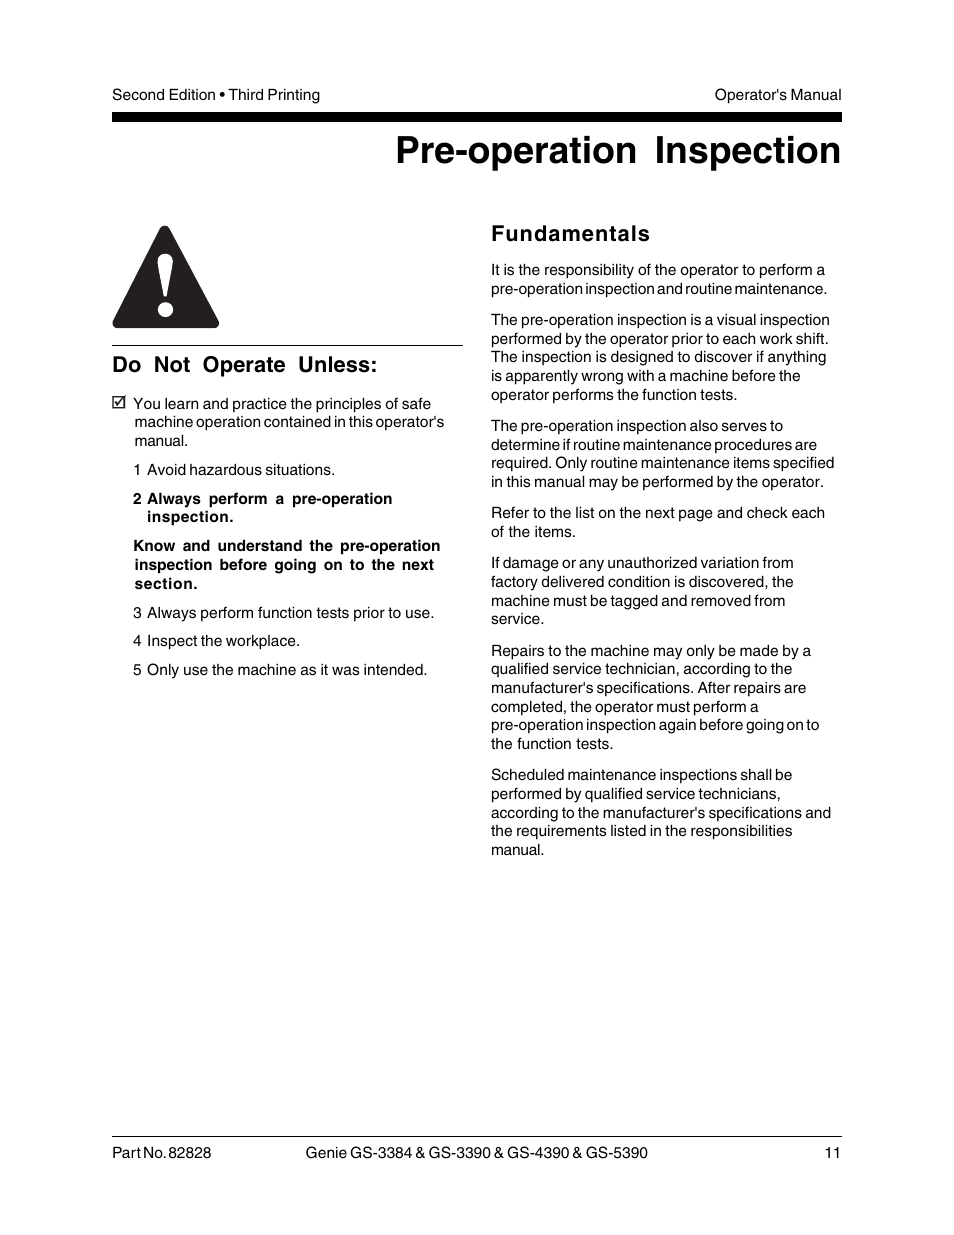 Pre-operation inspection, Do not operate unless